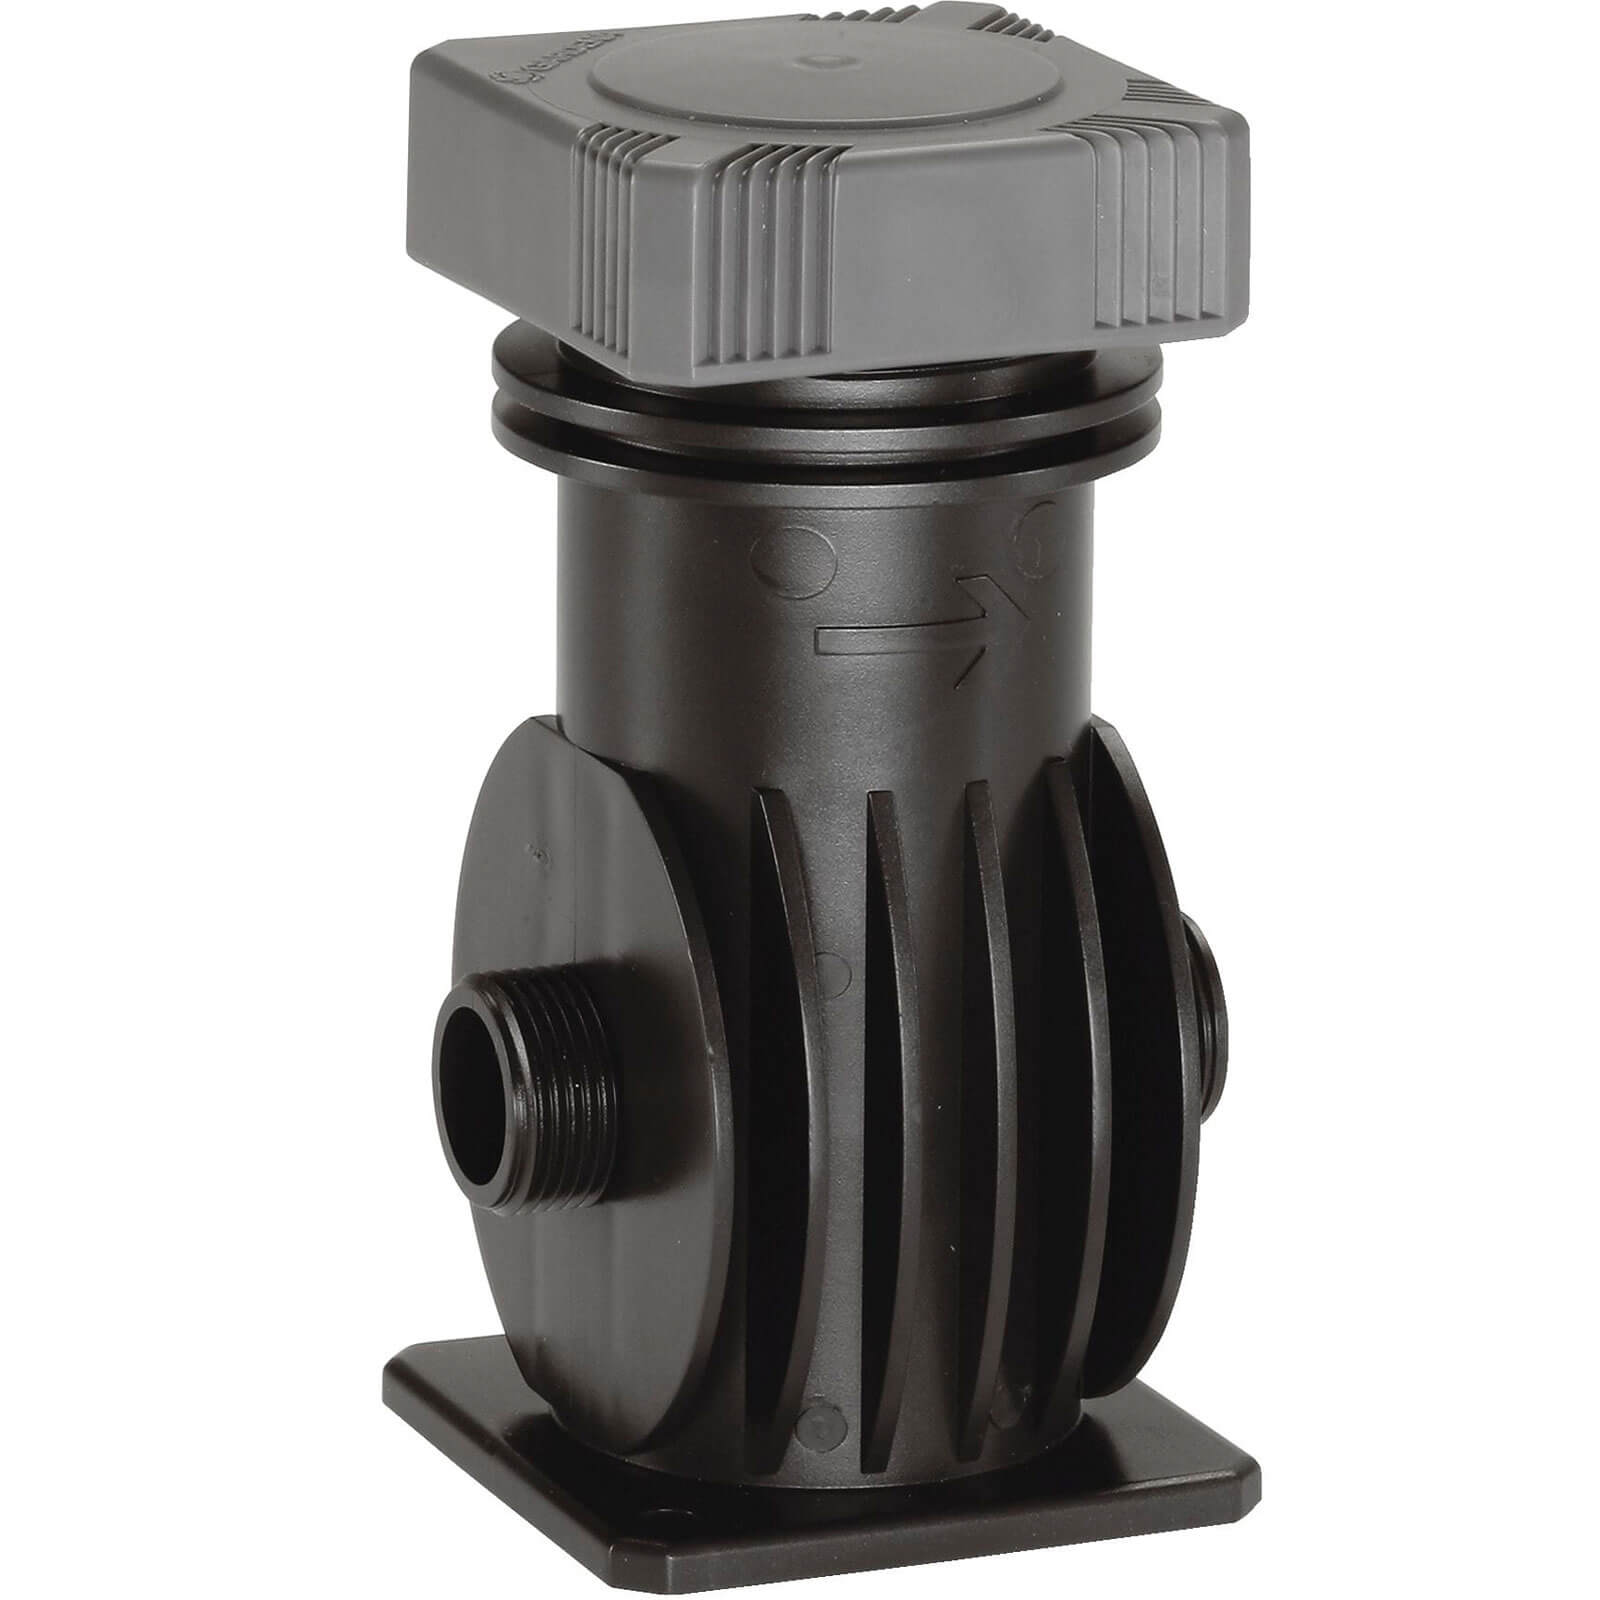 Gardena SPRINKLER SYSTEM Central Filter for Threaded Taps 34